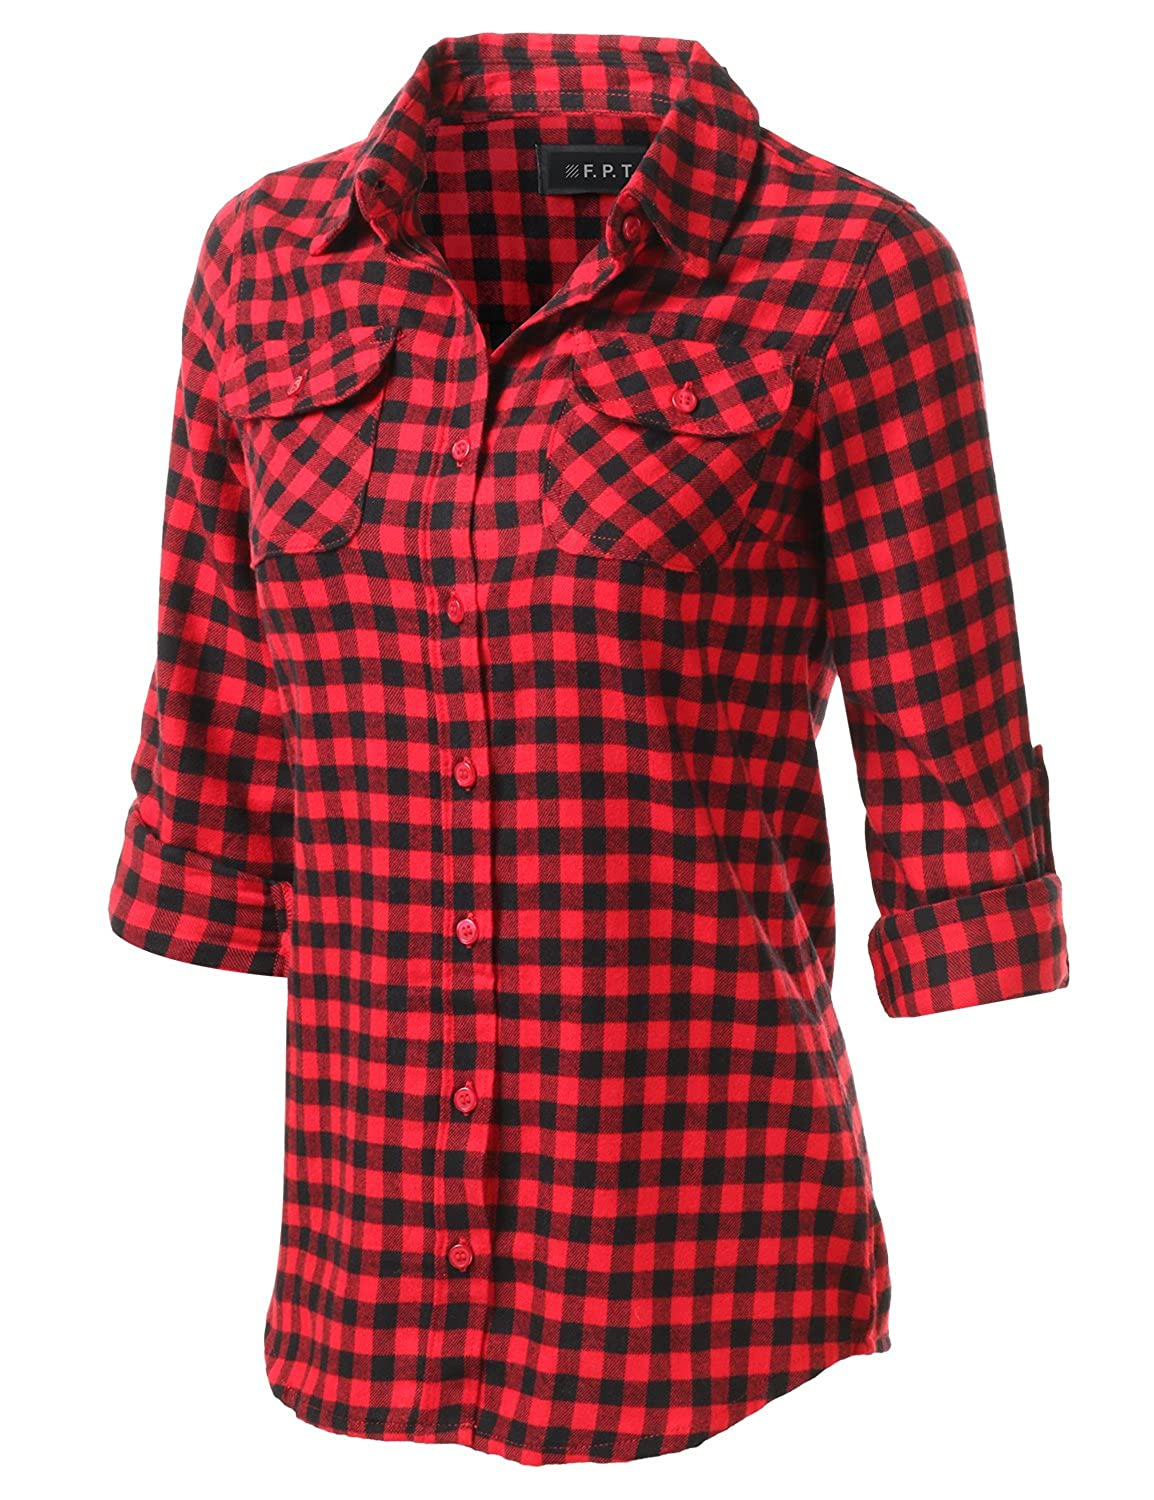 Bwpepr067_redblack Fifth Parallel Threads Women's Roll Up Long Sleeve Cotton Plaid Button Down Shirt BlackRed